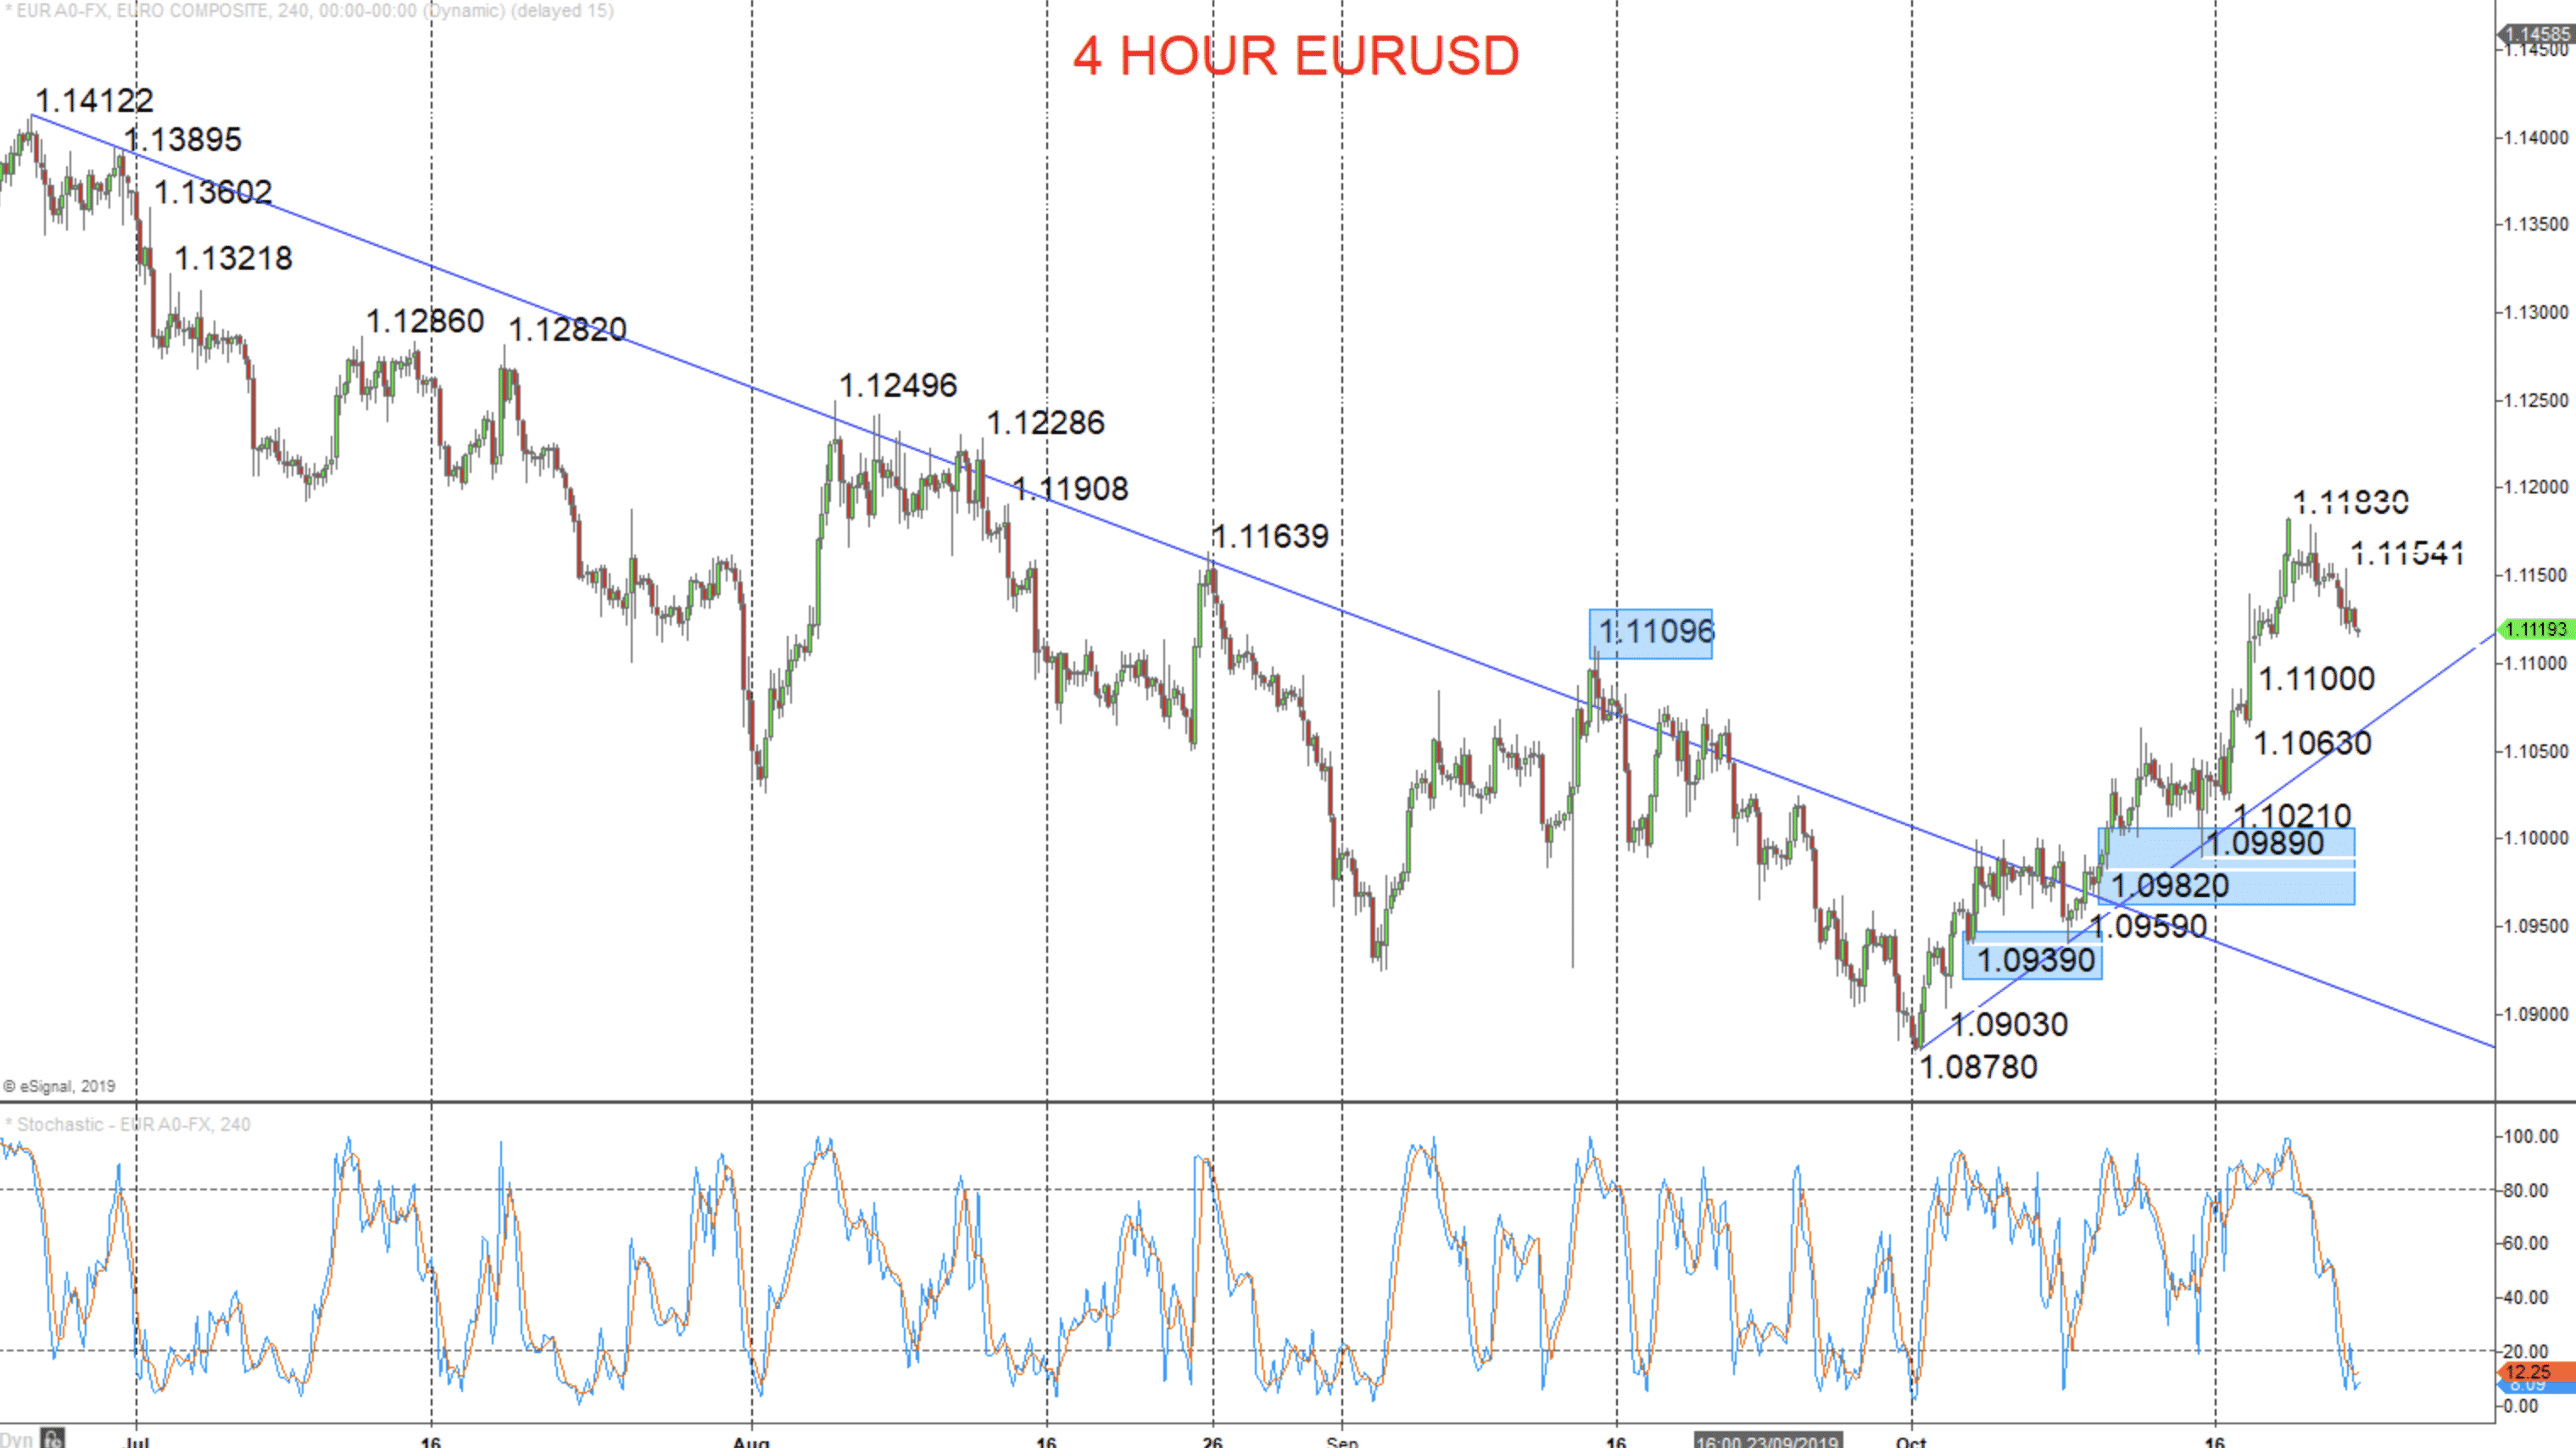 EURUSD dips on Brexit concerns & Texas Instruments revenue warnings Image